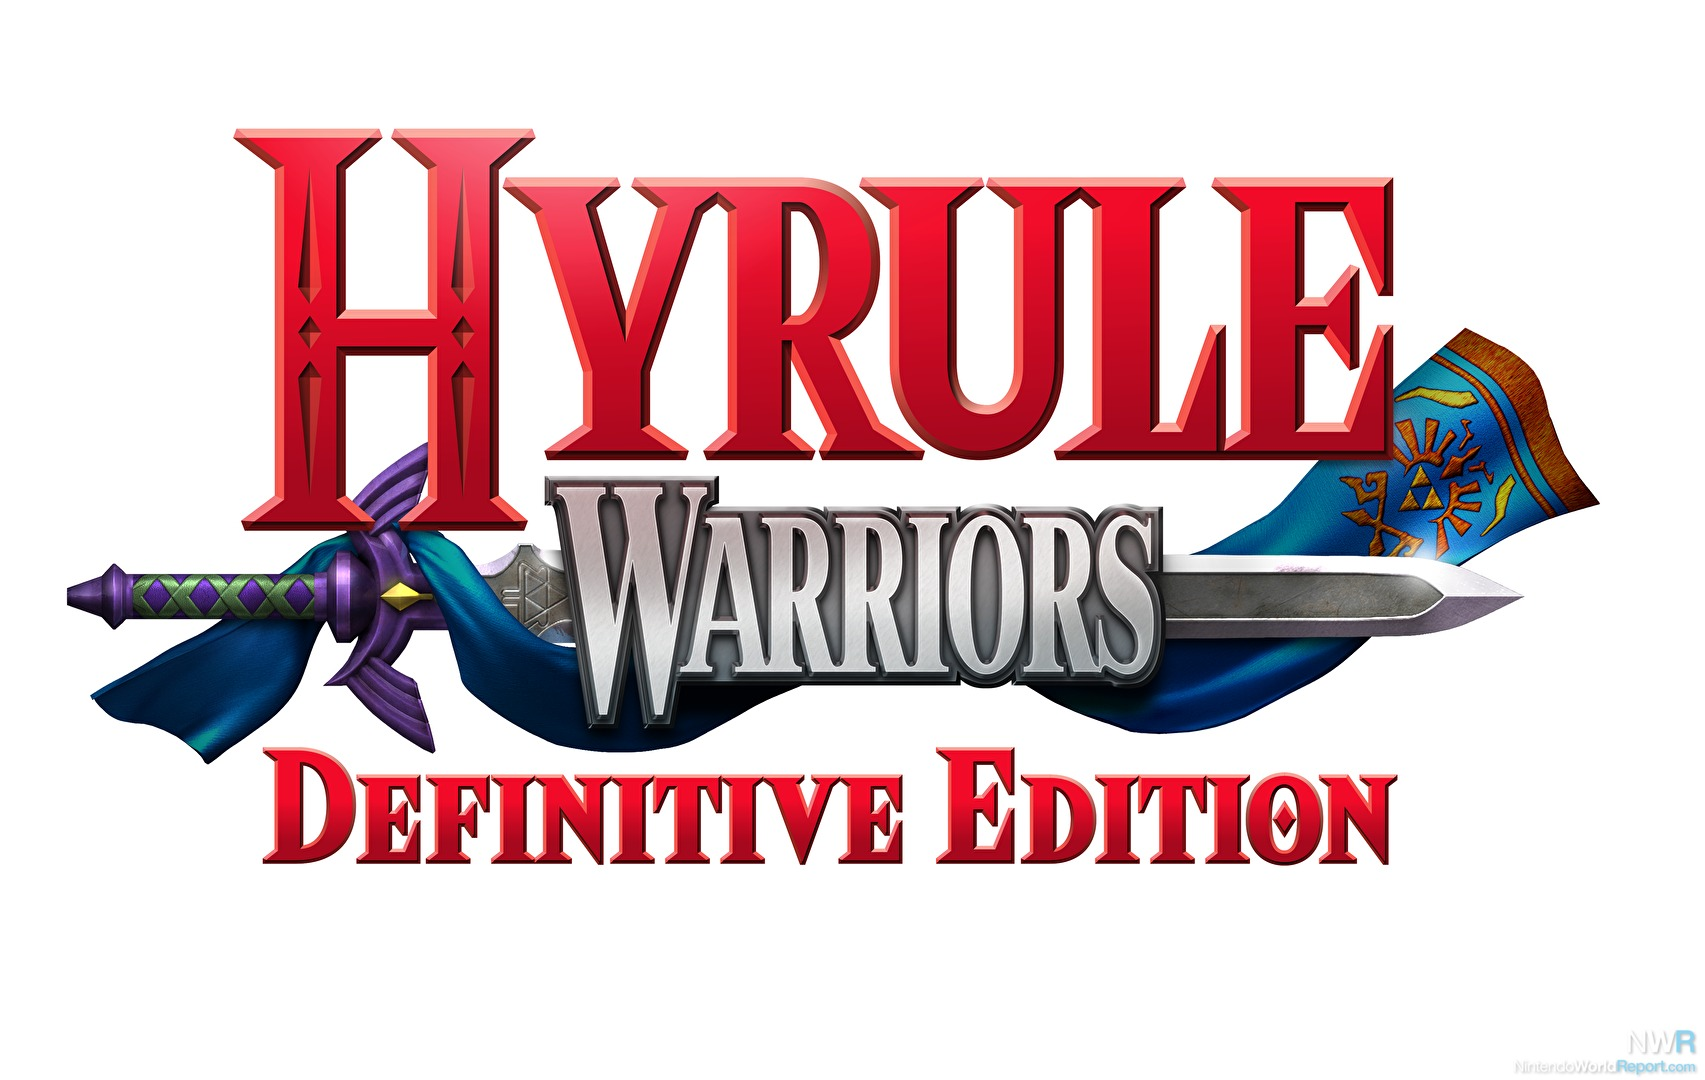 Hyrule Warriors: Definitive Edition Announced For Switch, Release Date Spring 2018